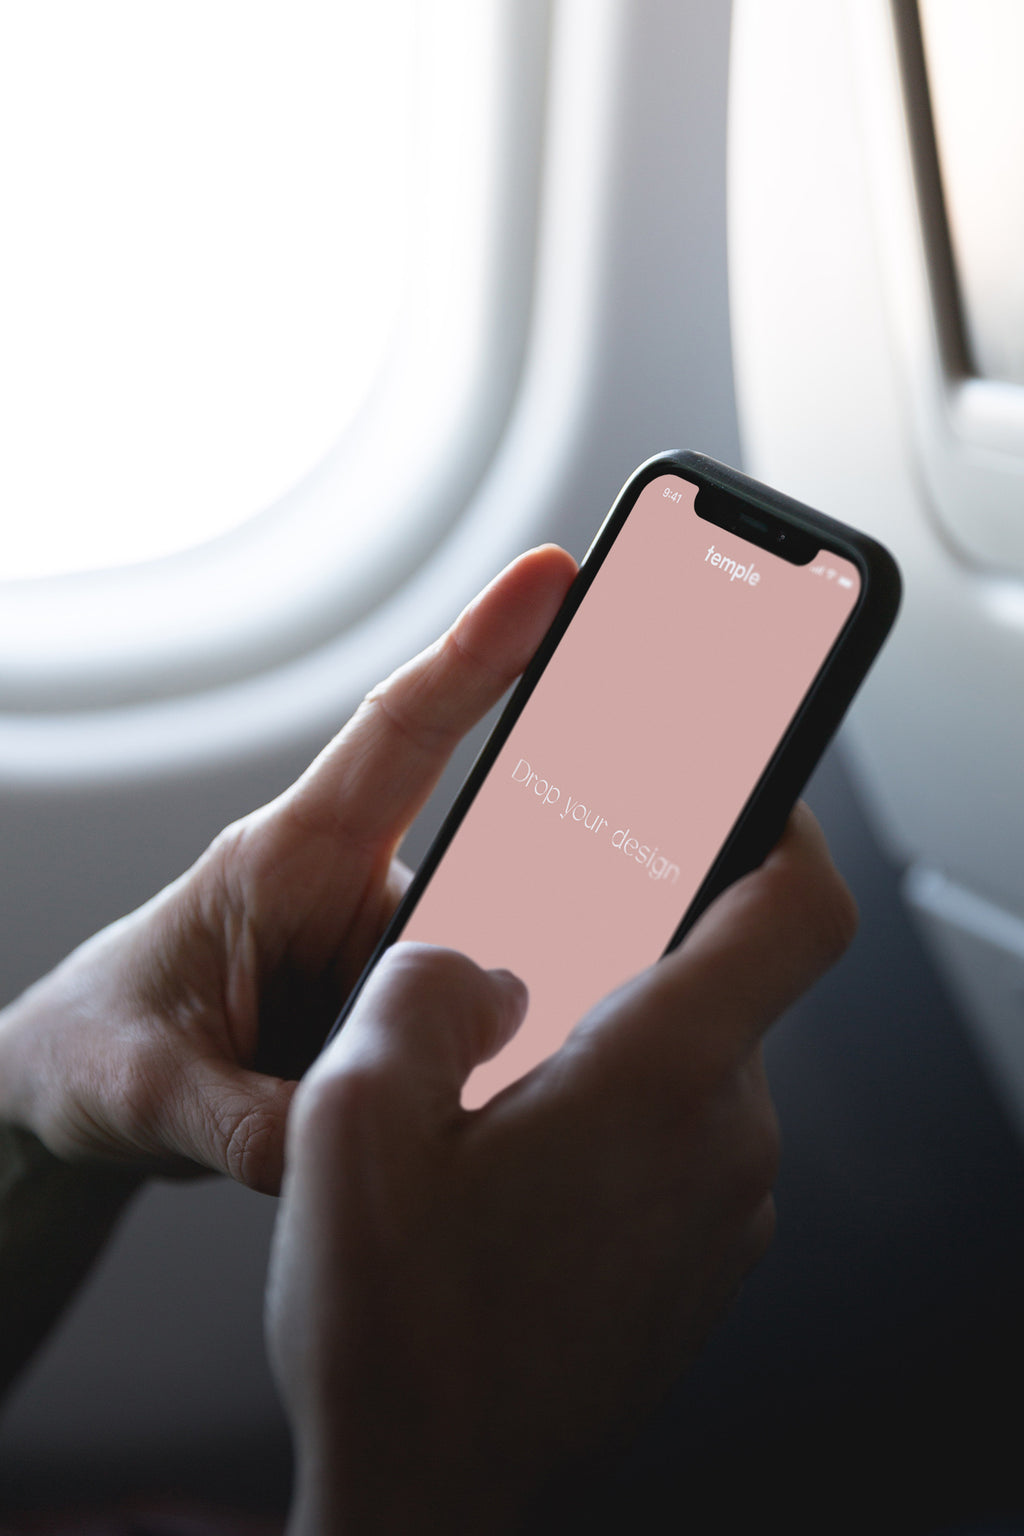 In Airplane With iPhone X Mockup